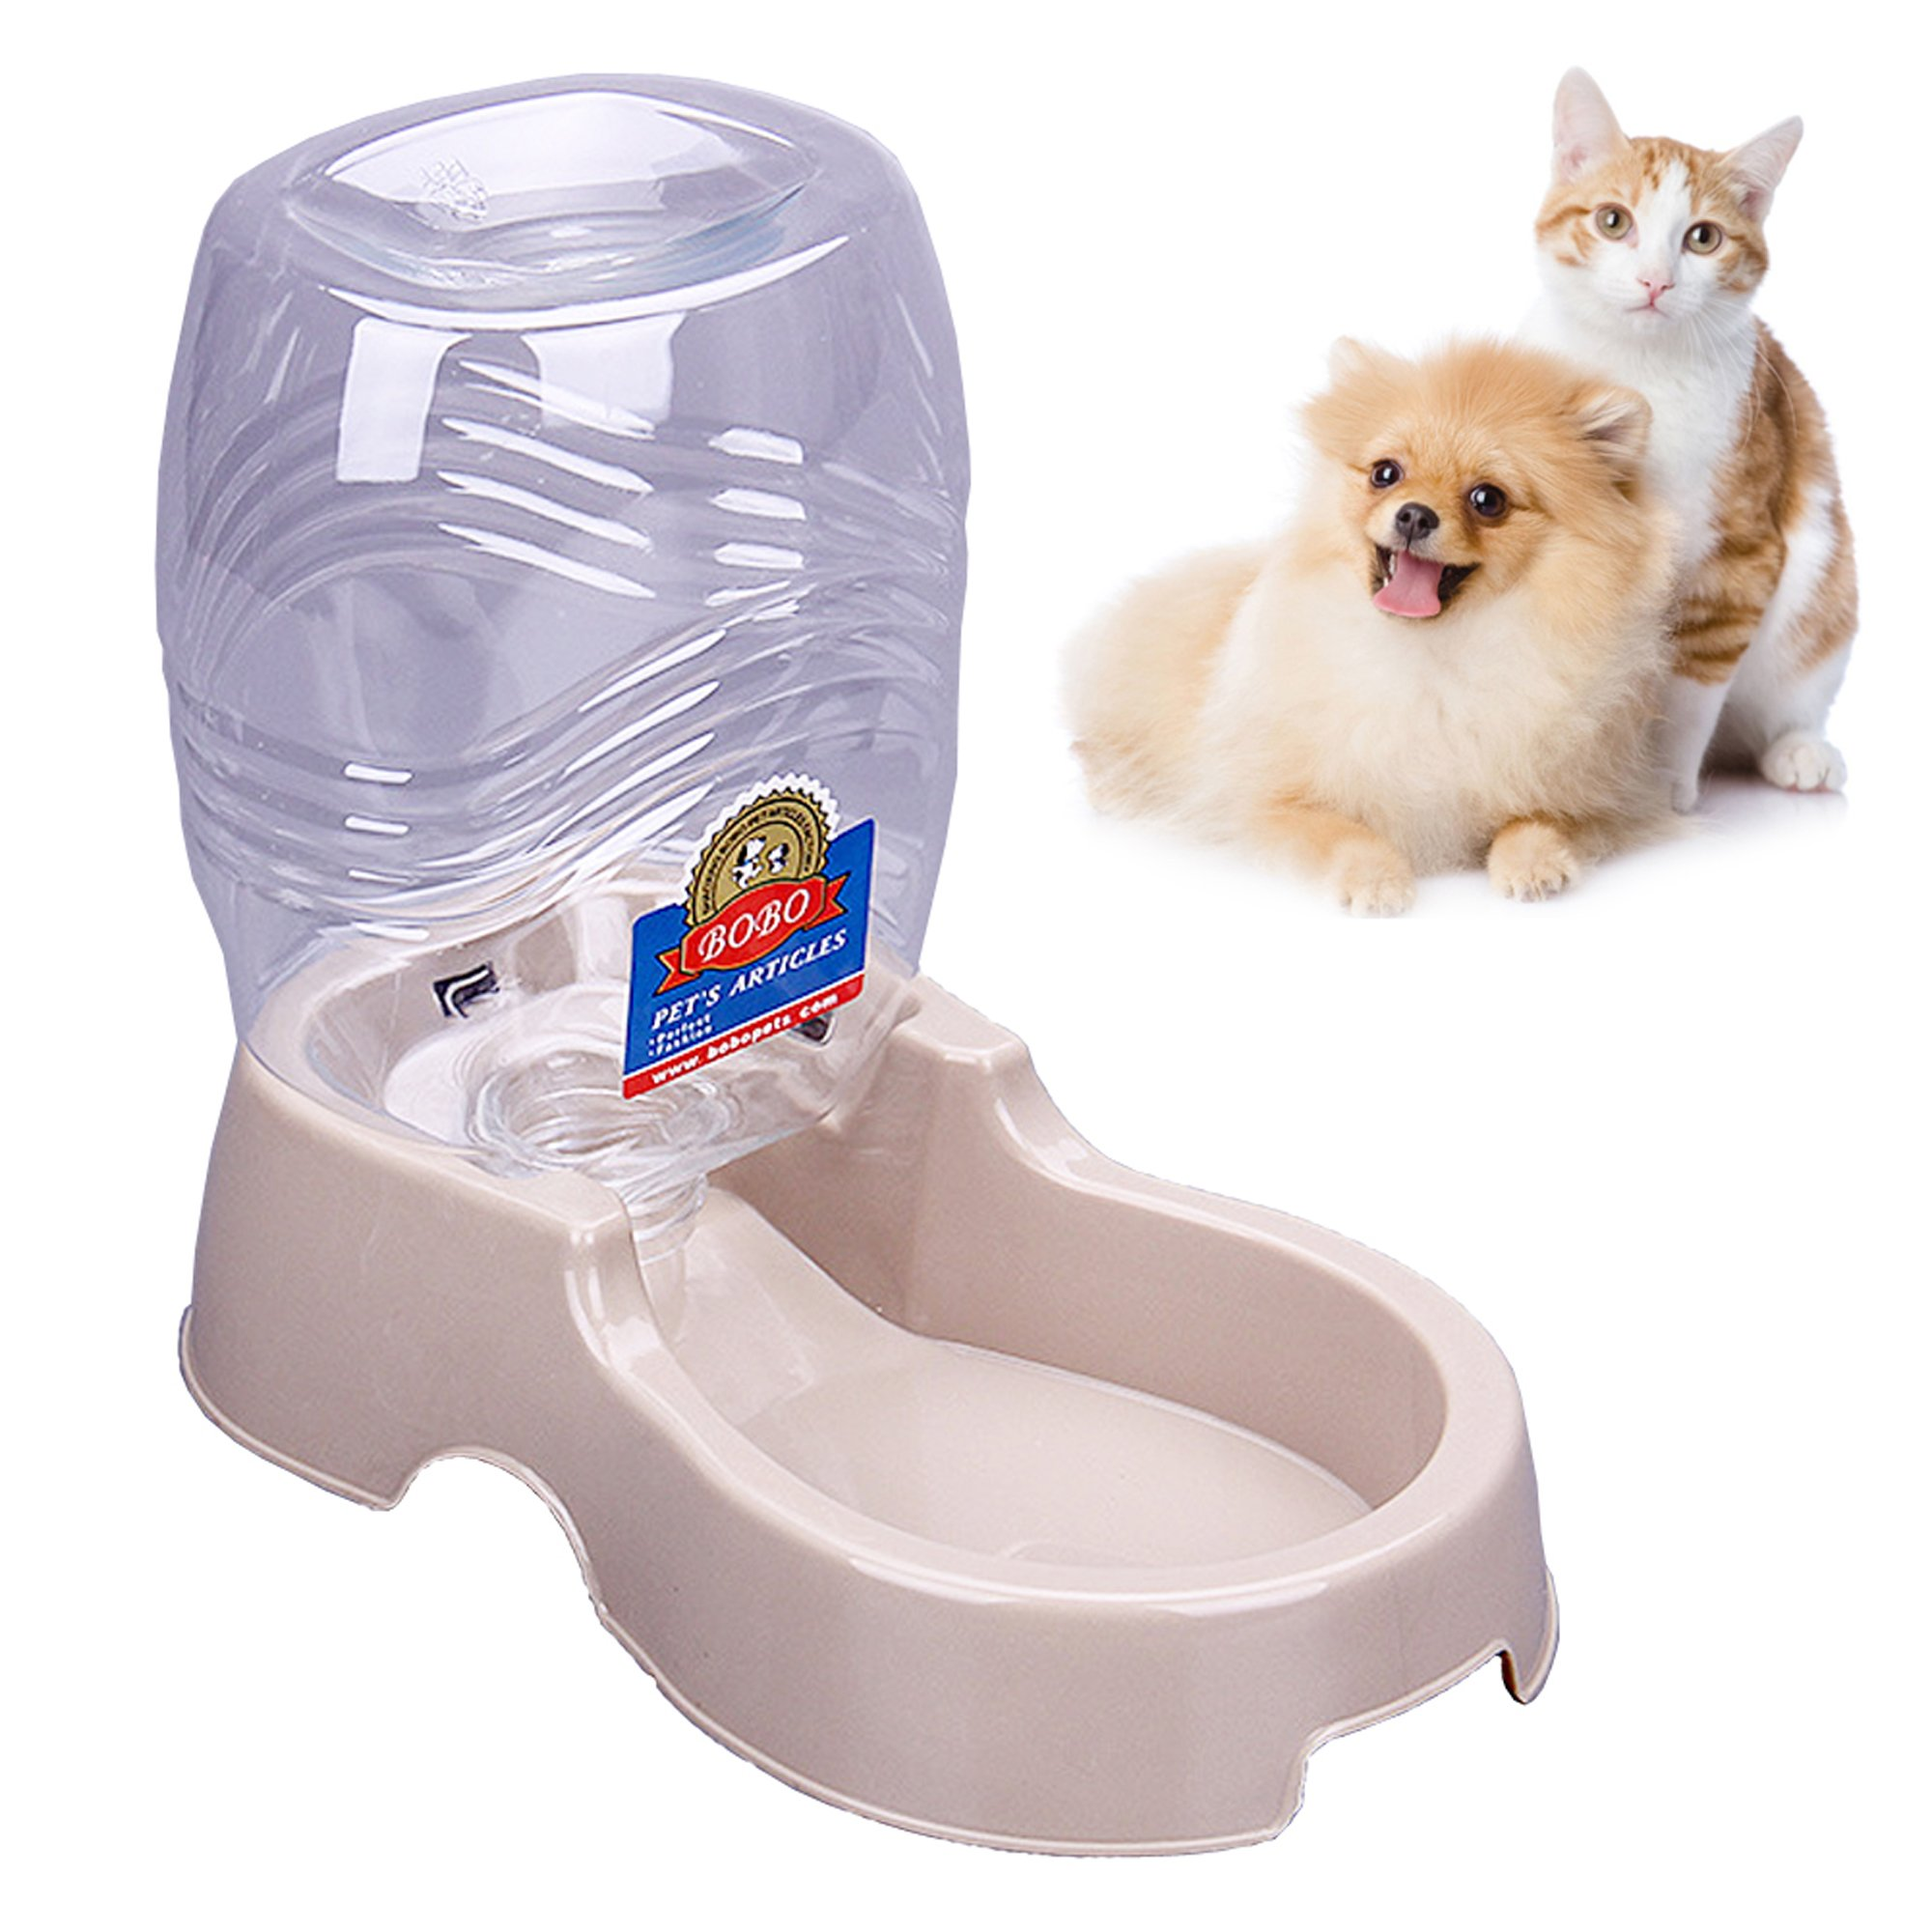 BOBO Pet Automatic Replenish Waterer Pet Cafe Cat Drink Bowl Bottle Dish for Cats/Dogs -1/4 gal(beige) by Unknown